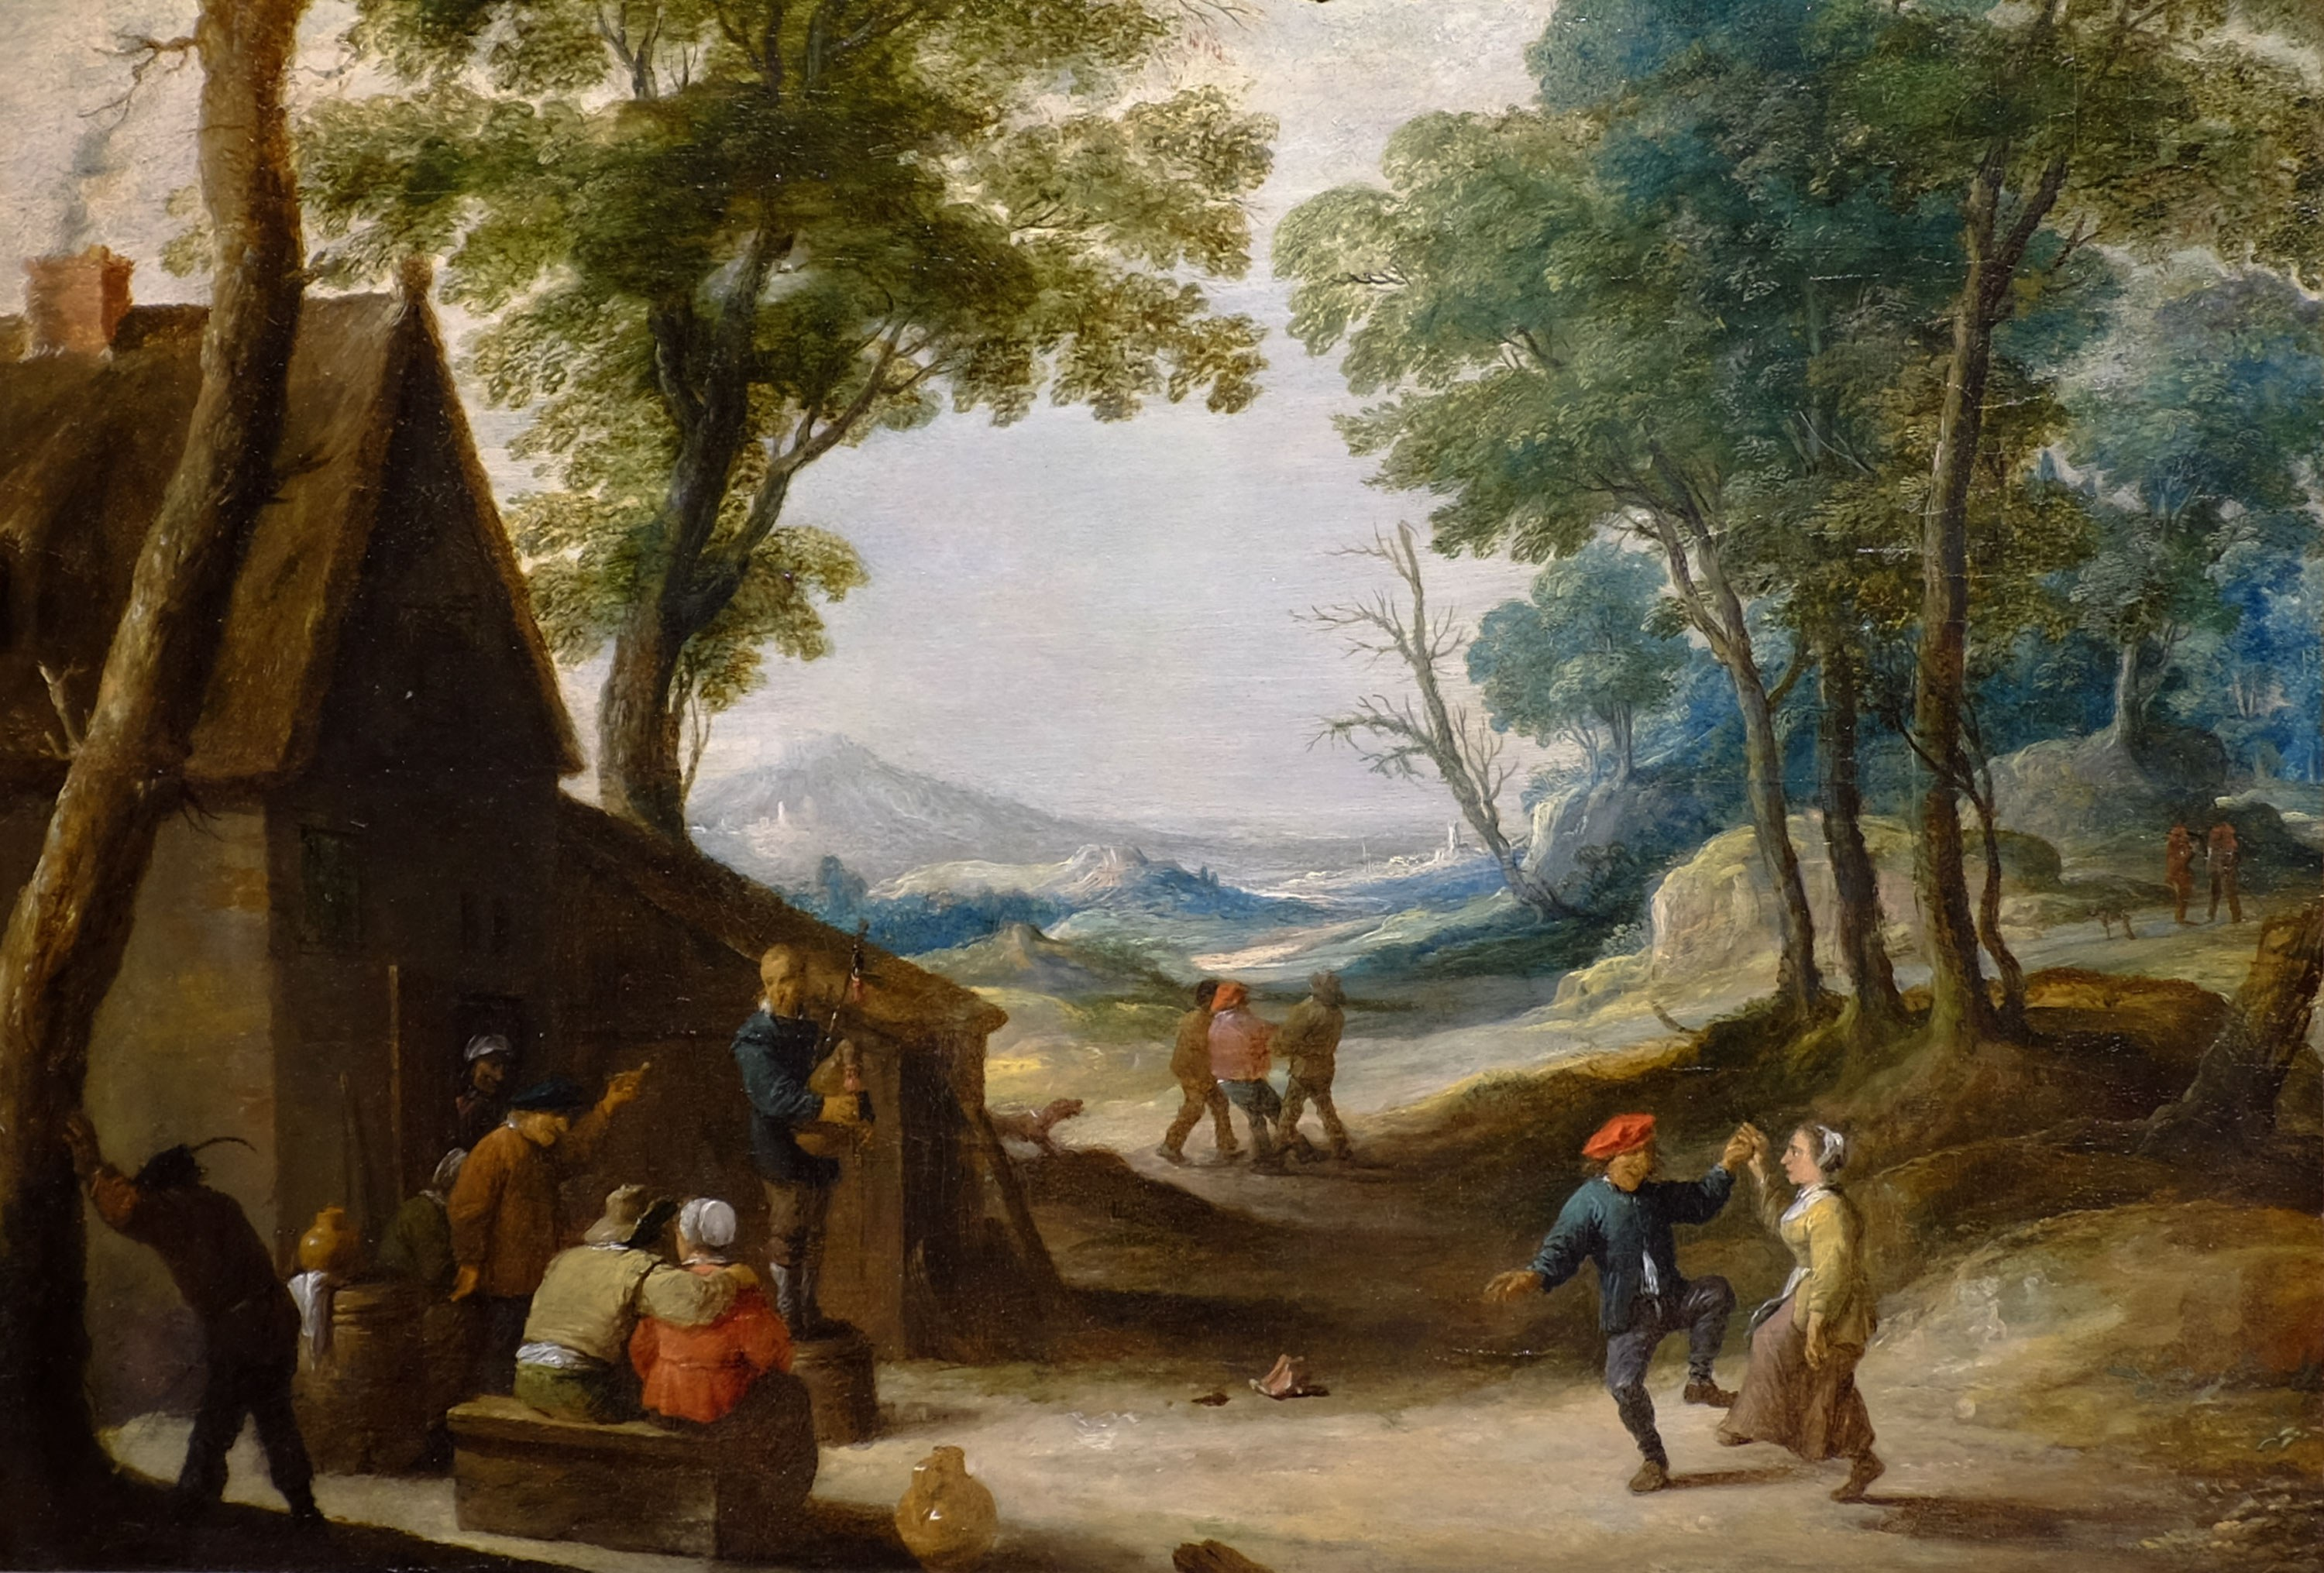 David Teniers the Younger, Flemish, 1610–1690. Peasants Dancing, n.d. Oil on panel, 13 1/2 × 19 1/4 in. Gift of Mrs. Jay C. Thompson and Mr. J. Curtis Willson from the Estate of Mrs. George Crapo Willson, 1969.29